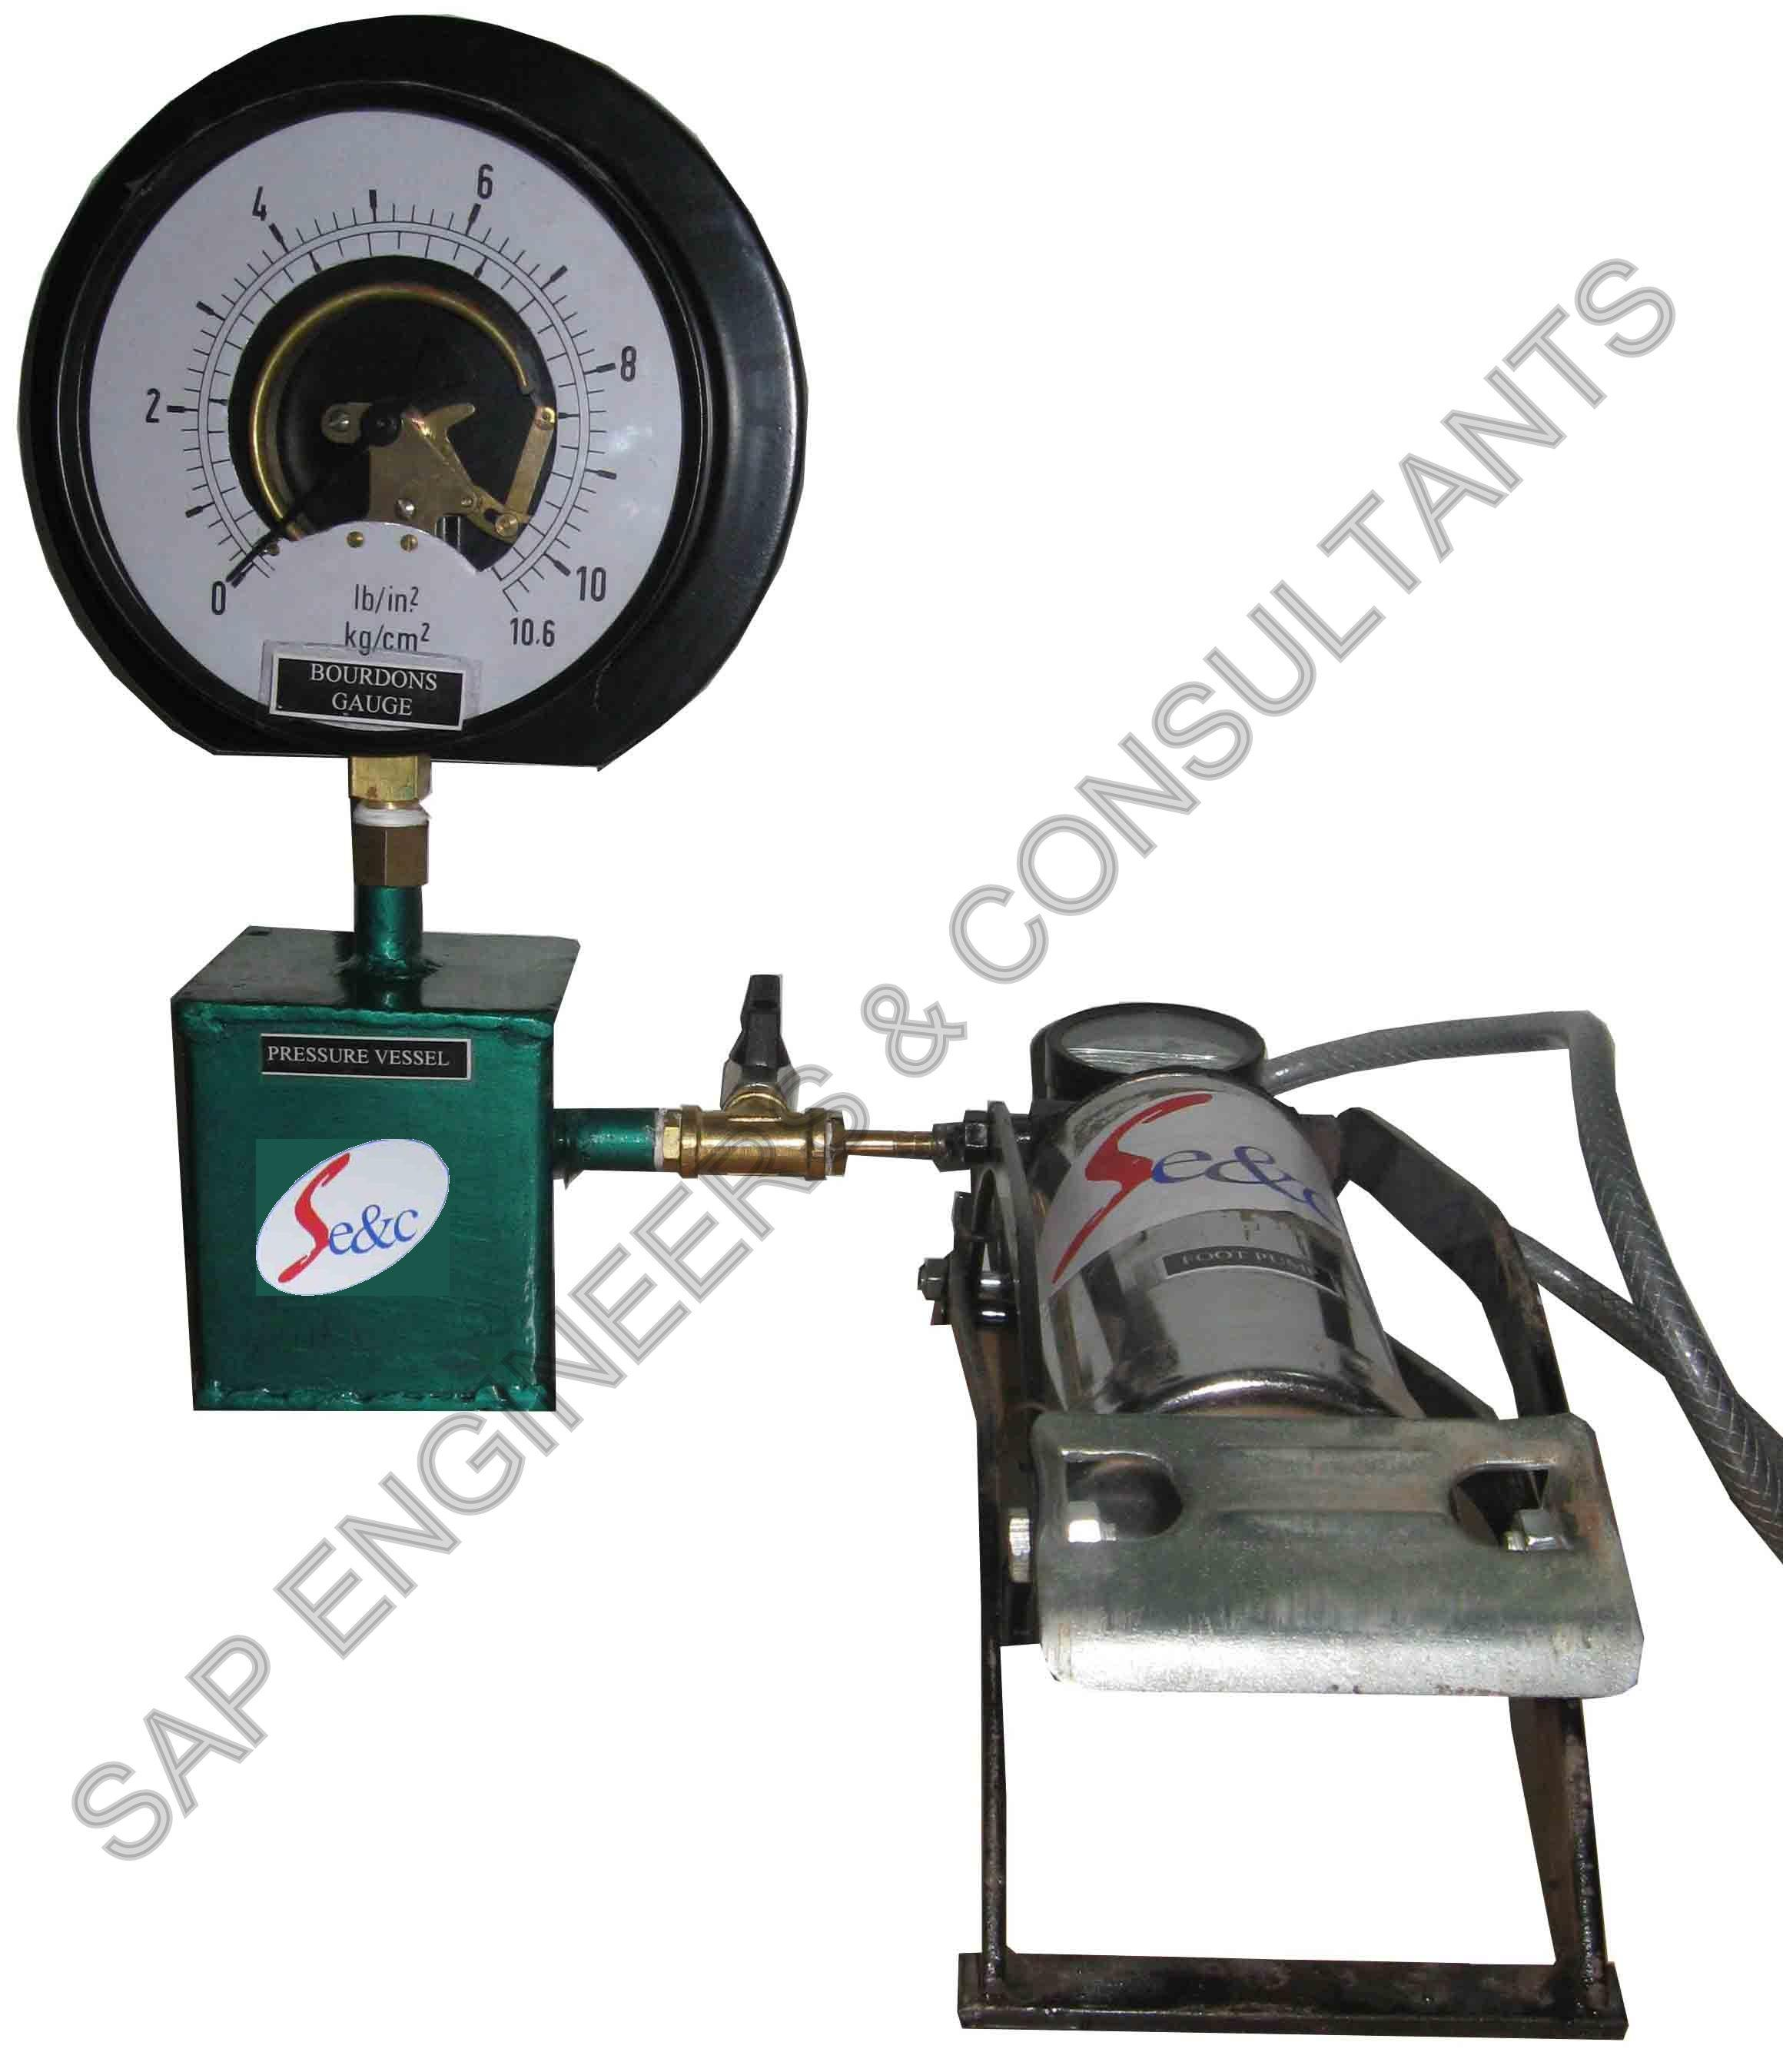 Pressure measurement using bourdon gauge & footpump